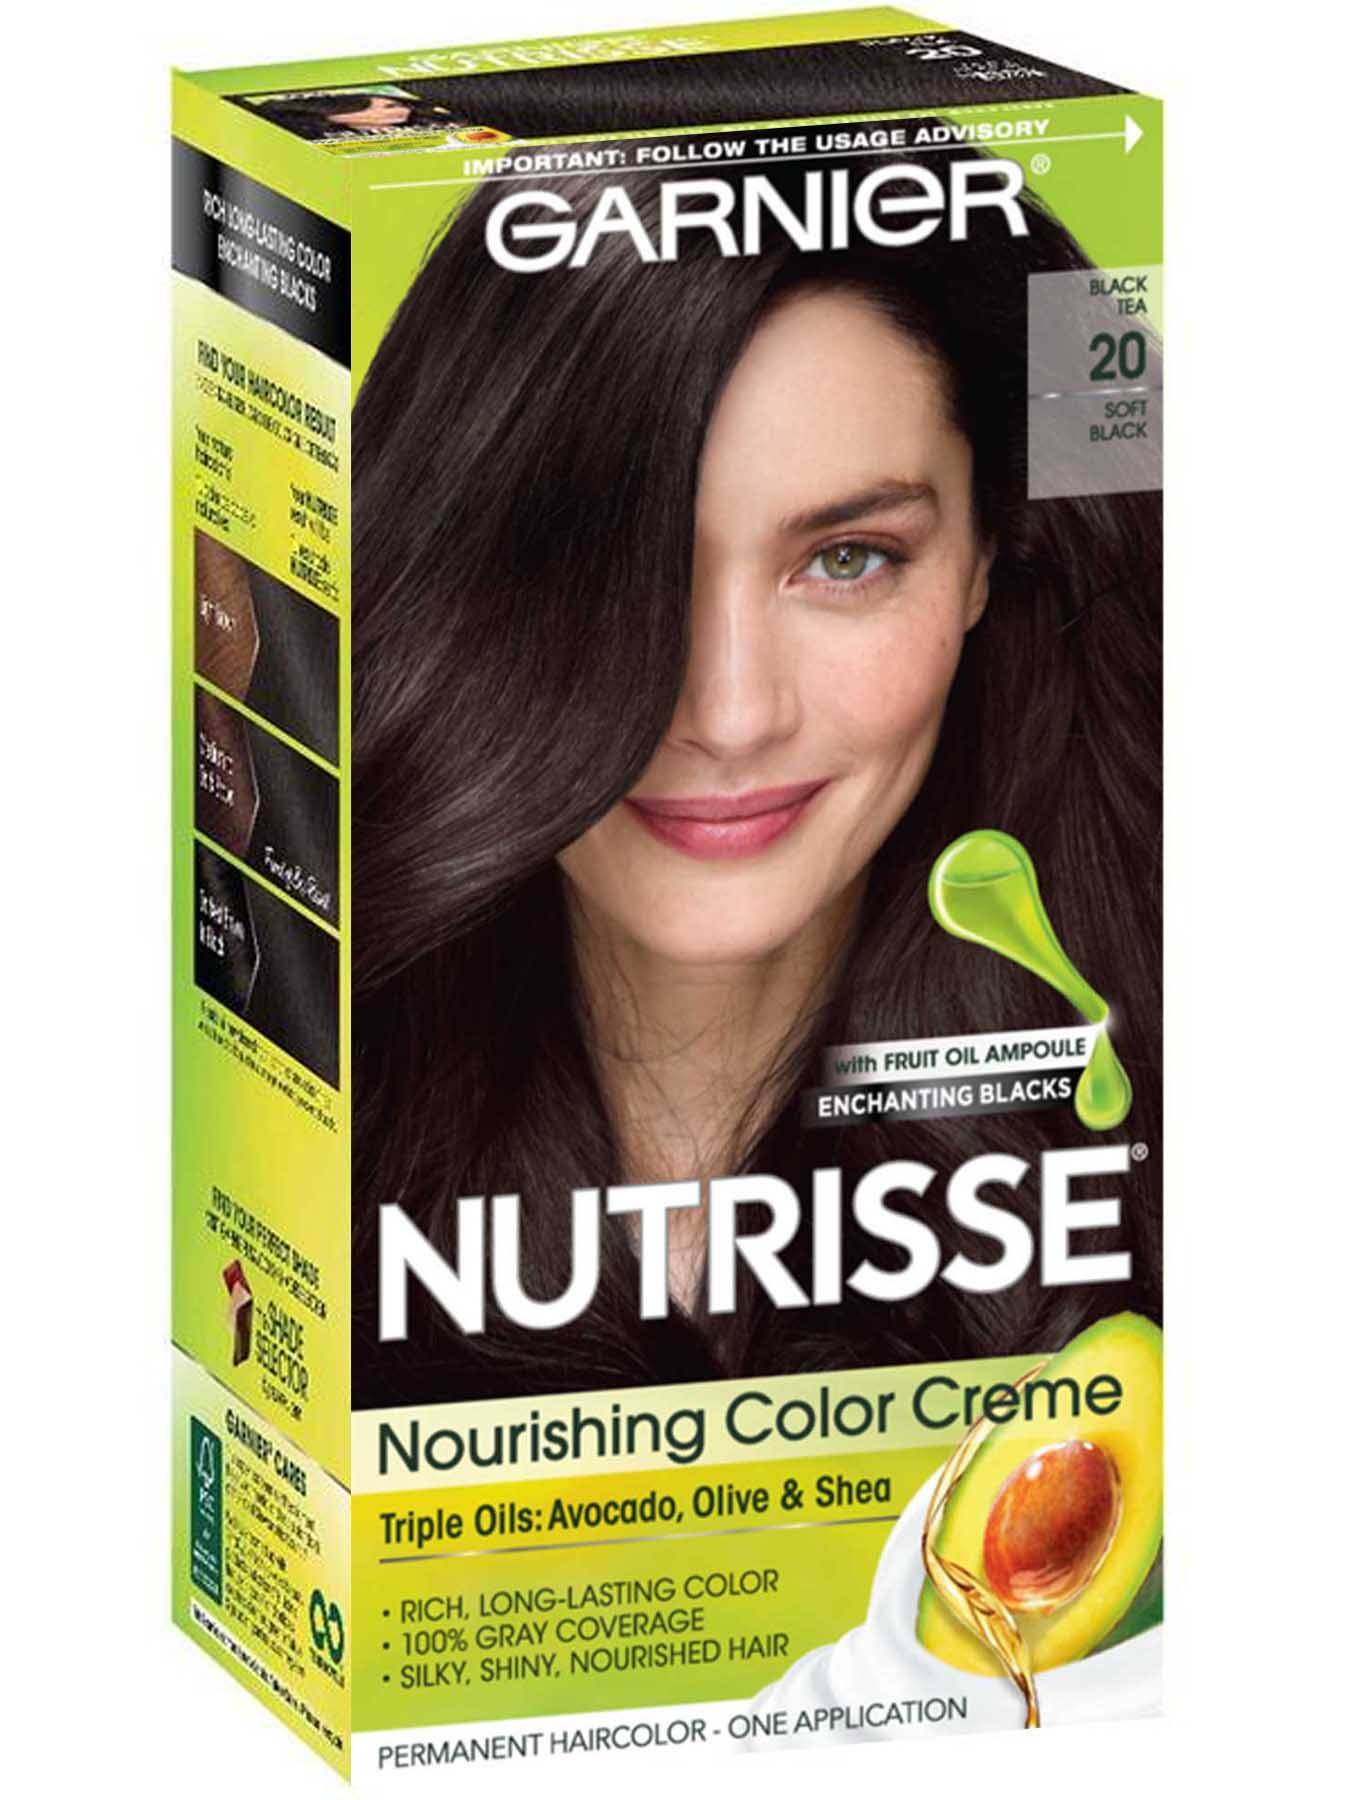 Nutrisse Nourishing Color Creme - Soft Black 20 (Black Tea) - Garnier